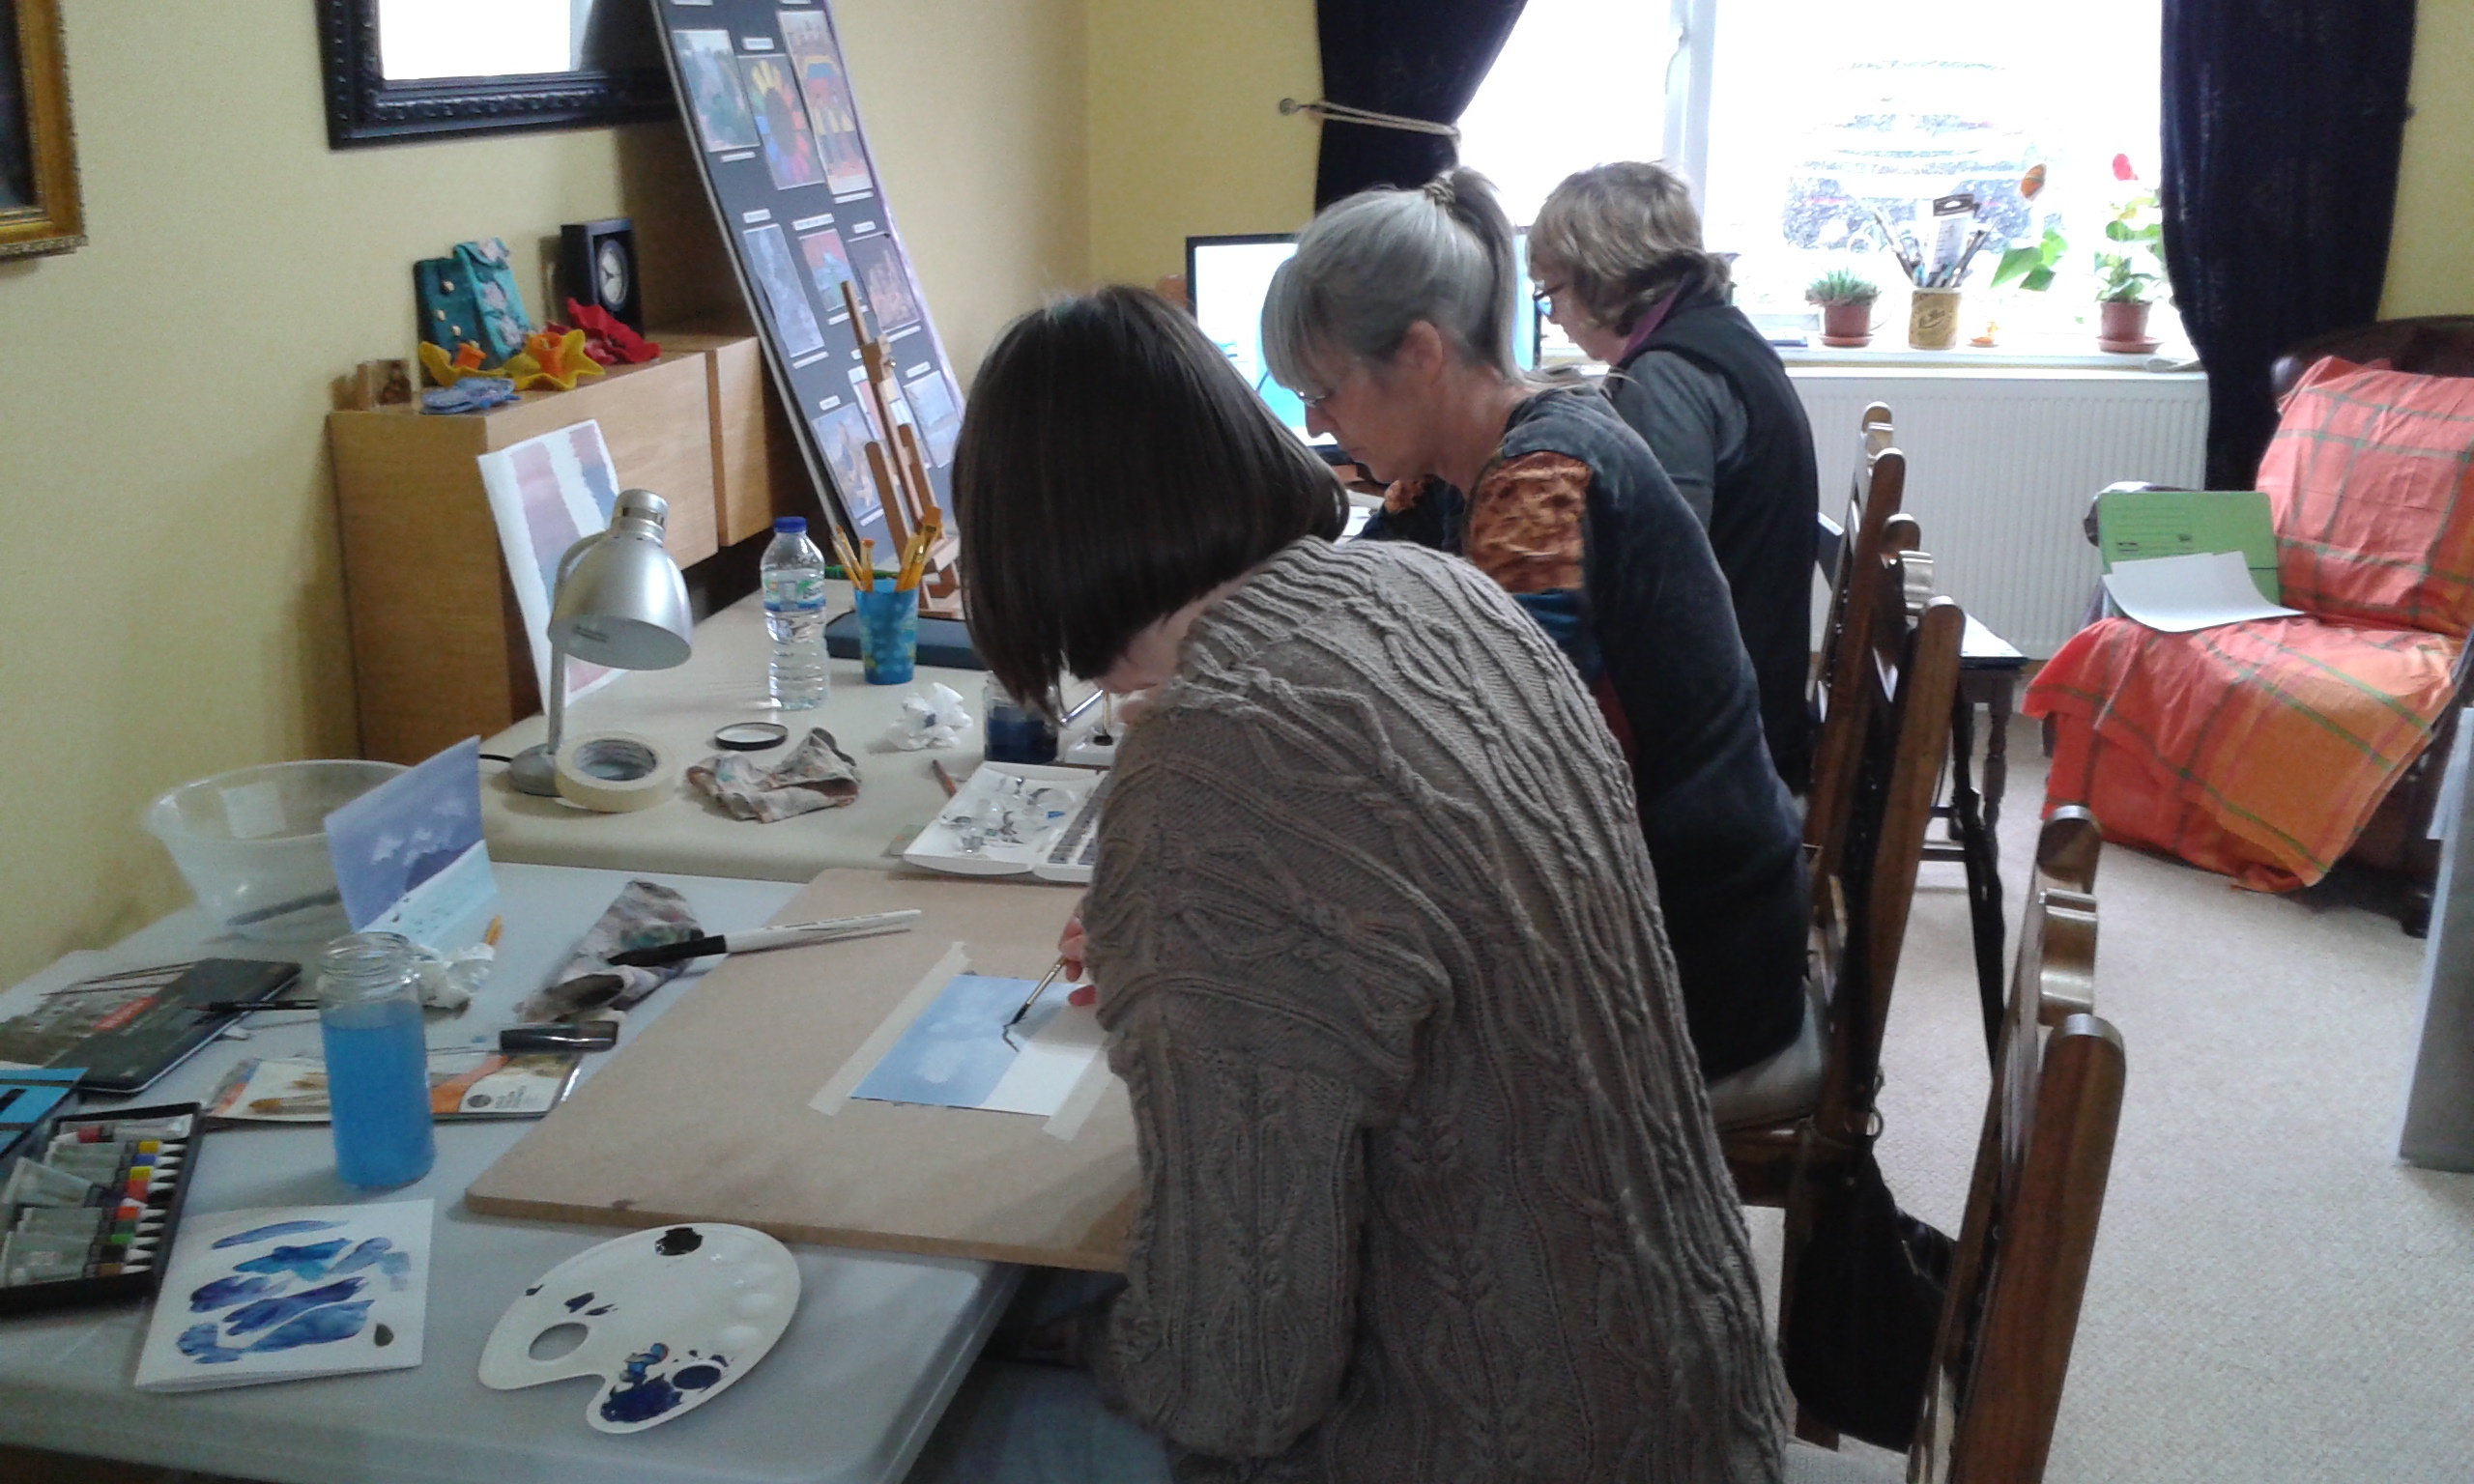 Learning to paint with watercolours at Fundamental Art Skills course in Worcestershire